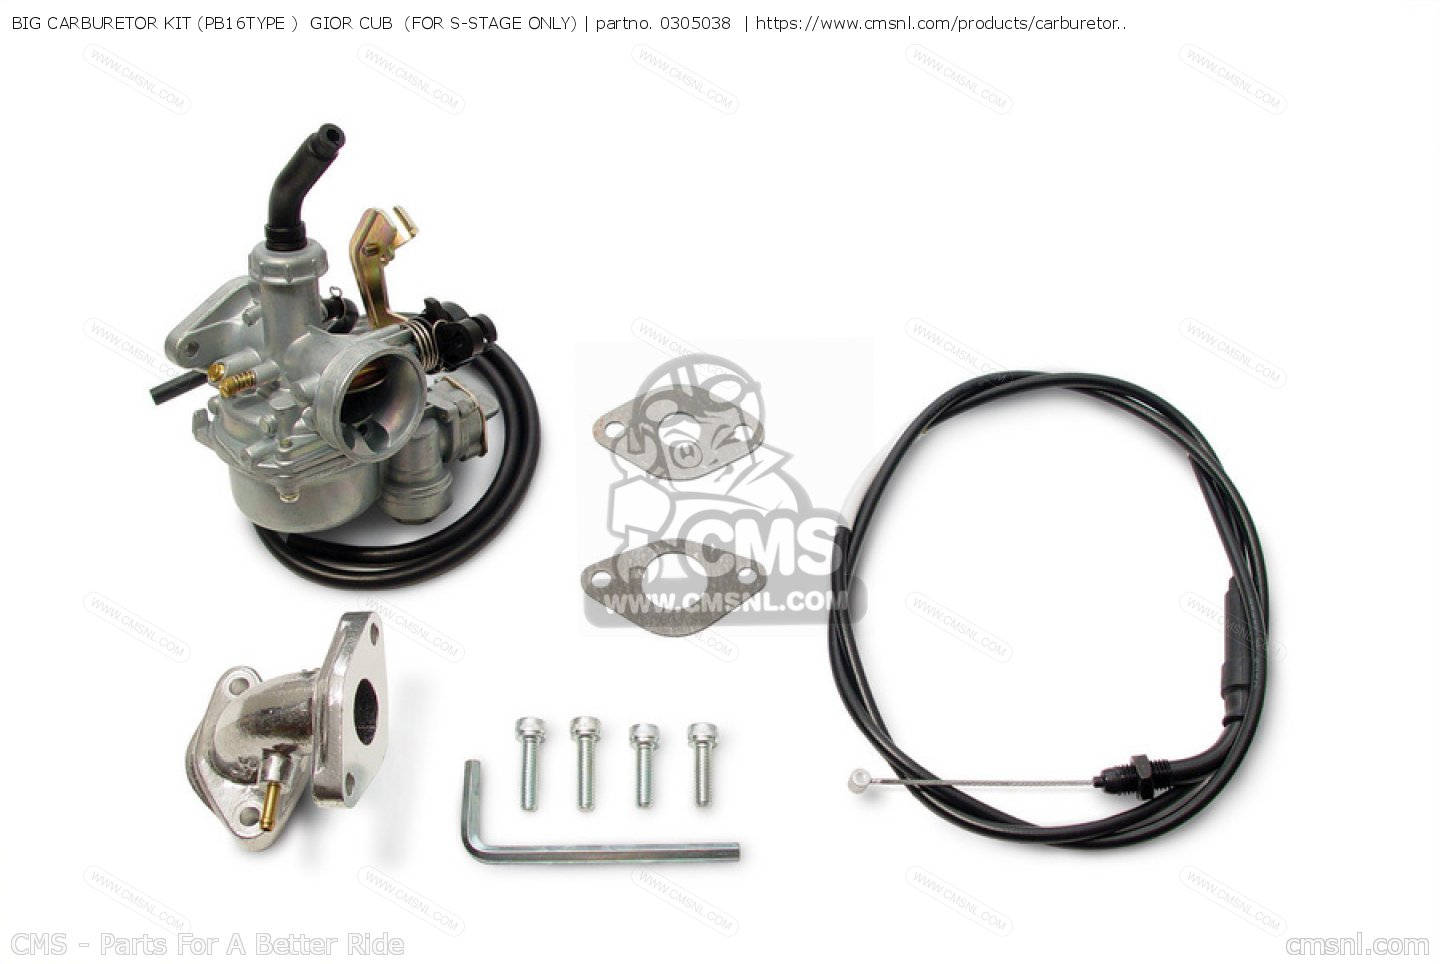 BIG CARBURETOR KIT (PB16TYPE ) GIOR CUB (FOR S-STAGE ONLY)